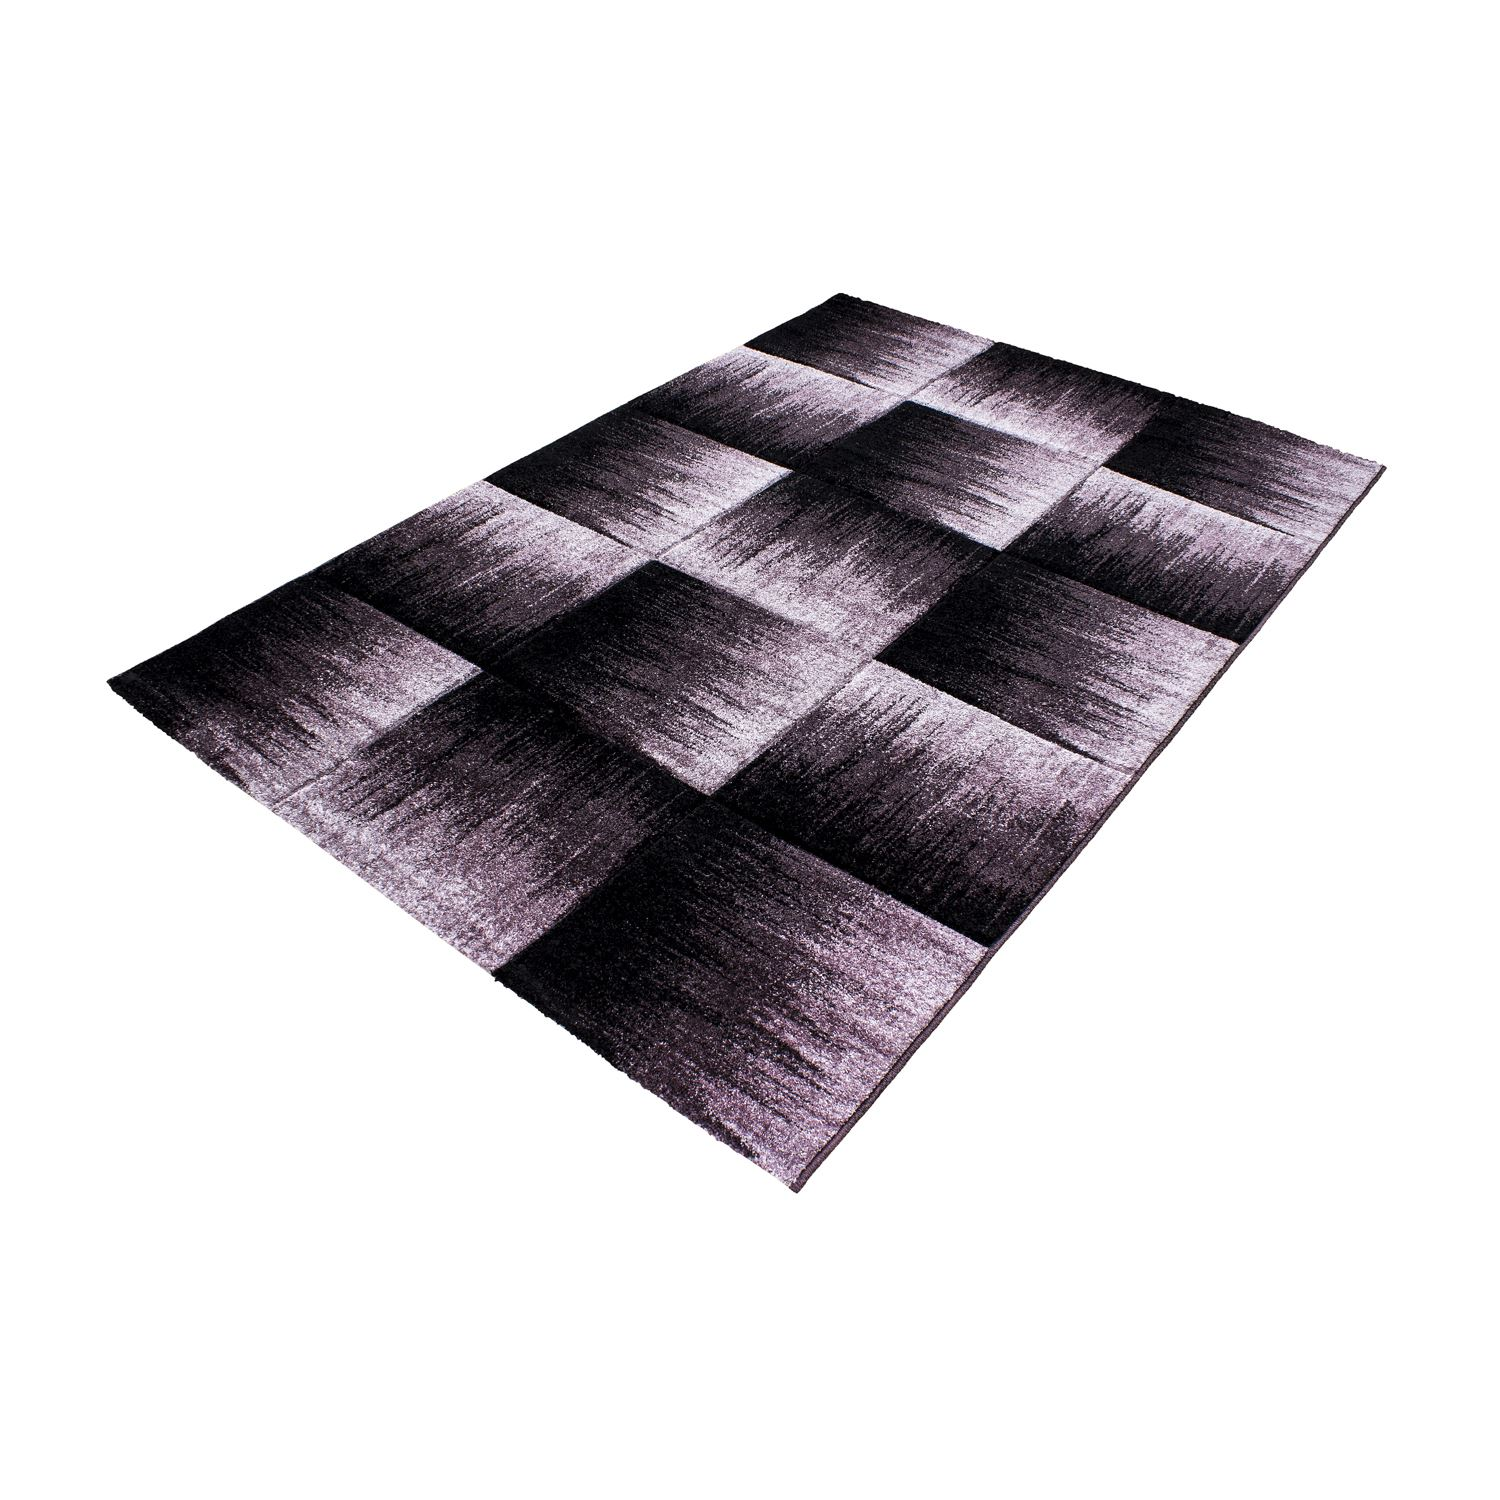 Black And White Rug Ebay Uk: Modern Contemporary Black Grey Brown Purple Grey Swirls